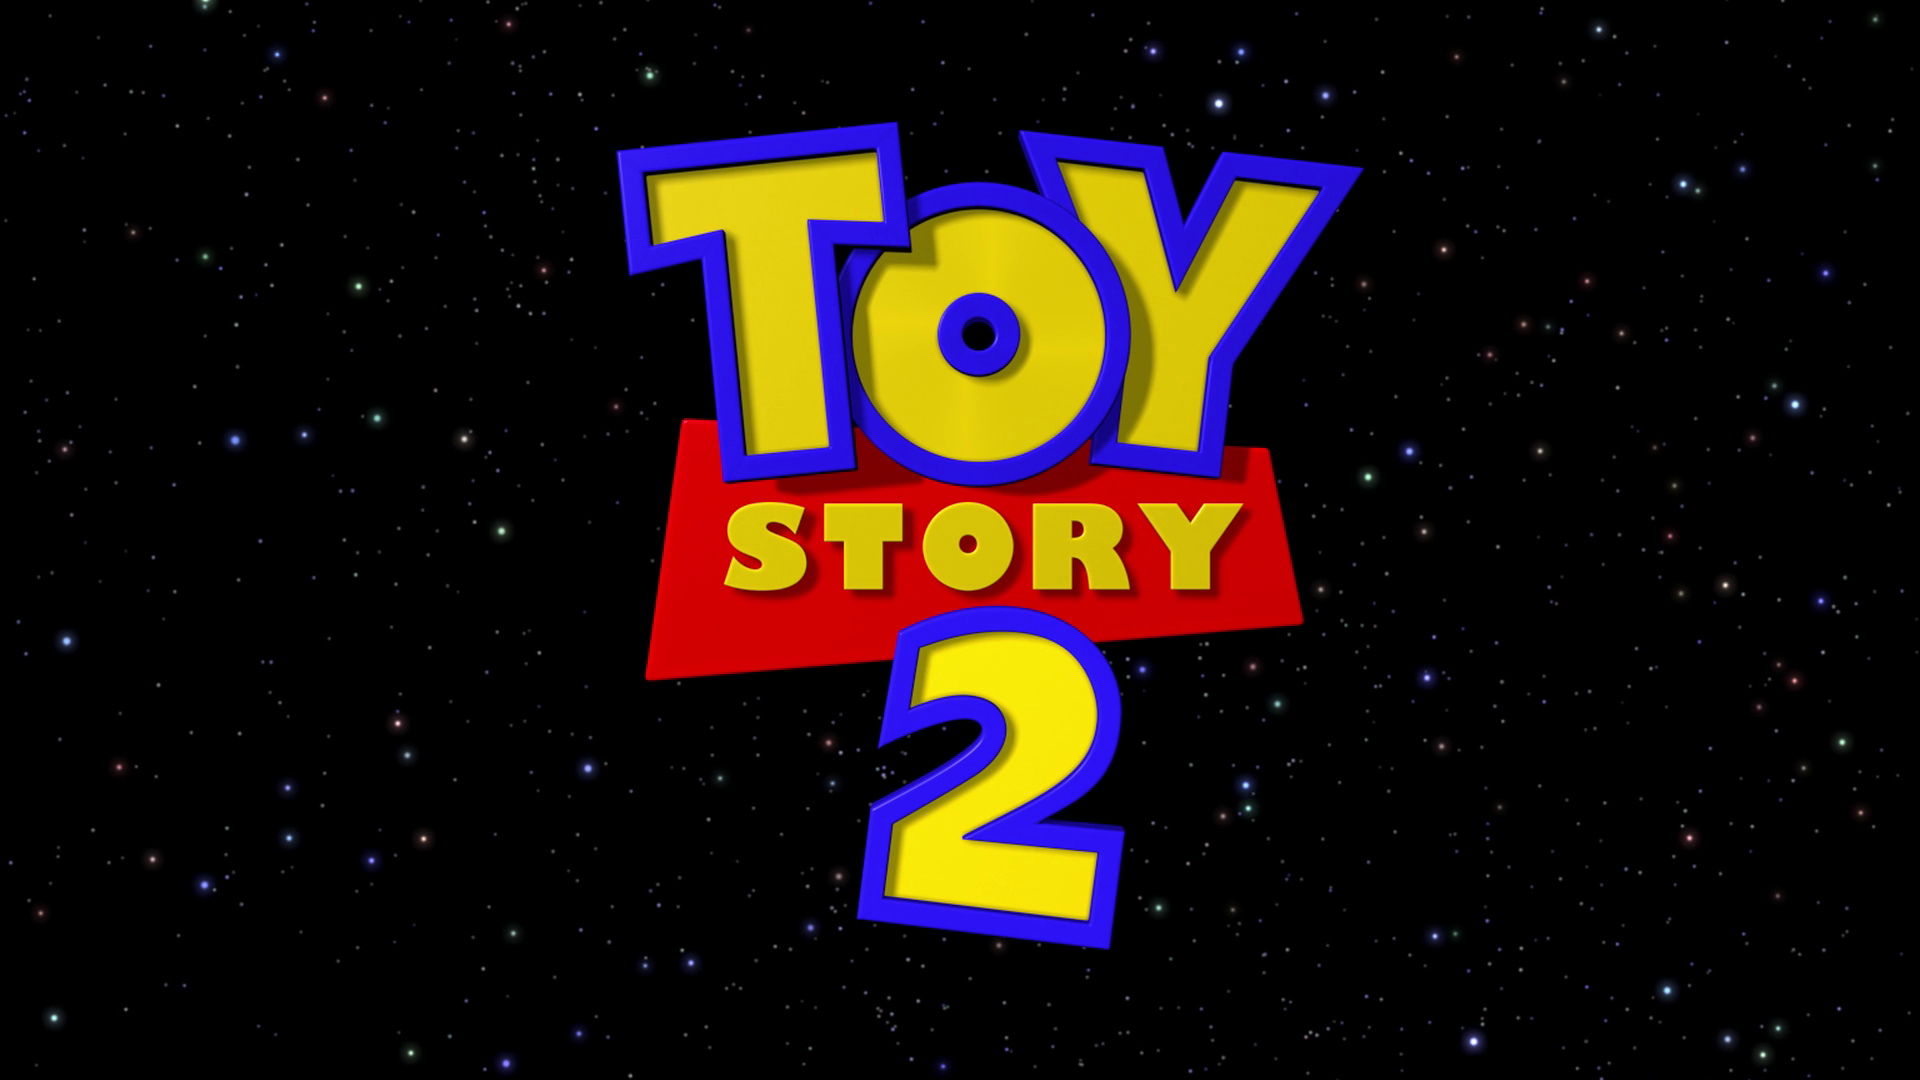 Toy Story 2 - Pixar Wiki - Disney Pixar Animation Studios